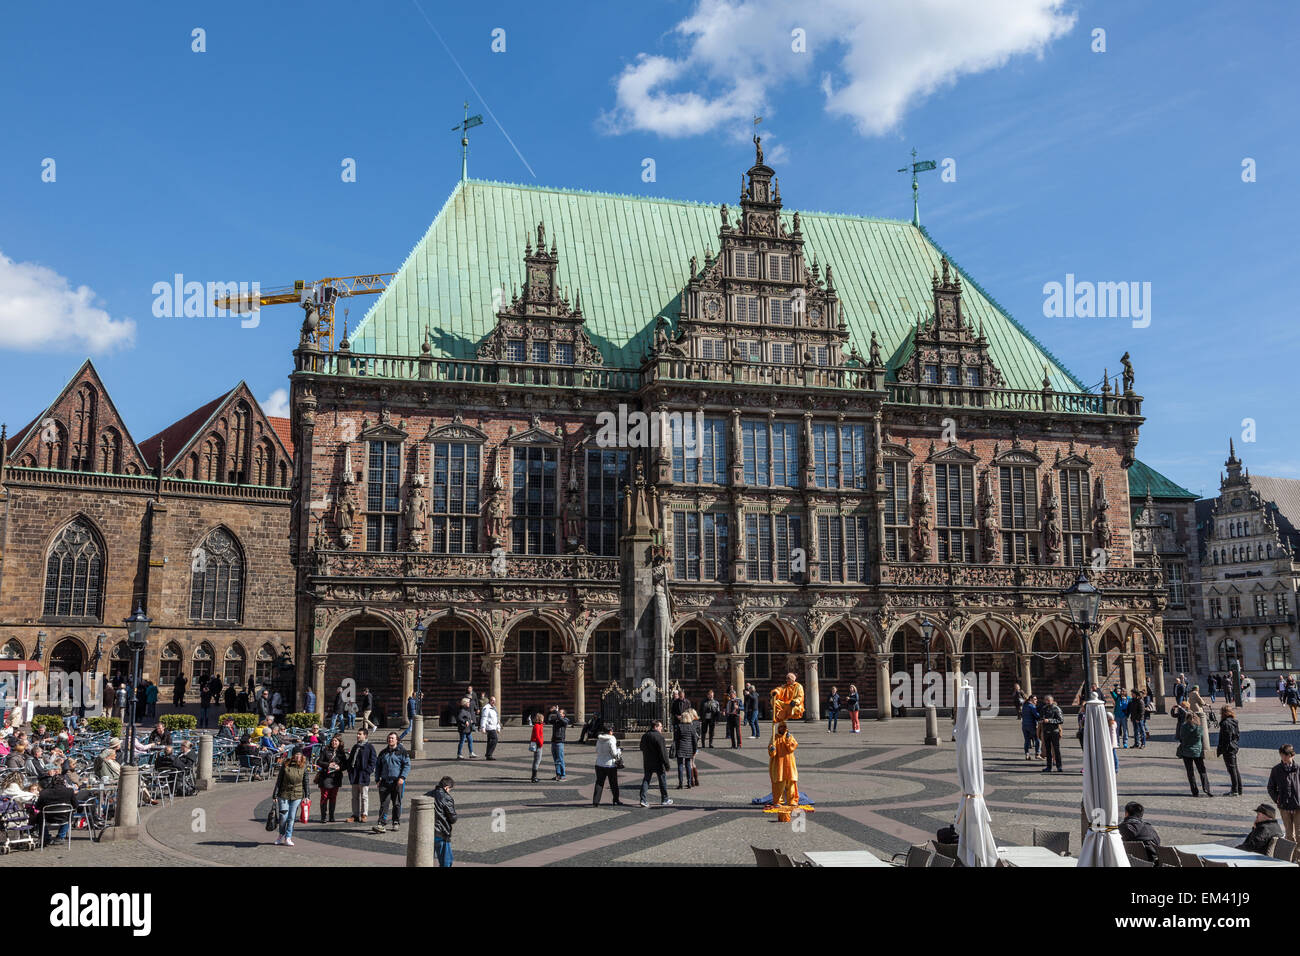 Historic city hall at the main square in Bremen, Germany - Stock Image